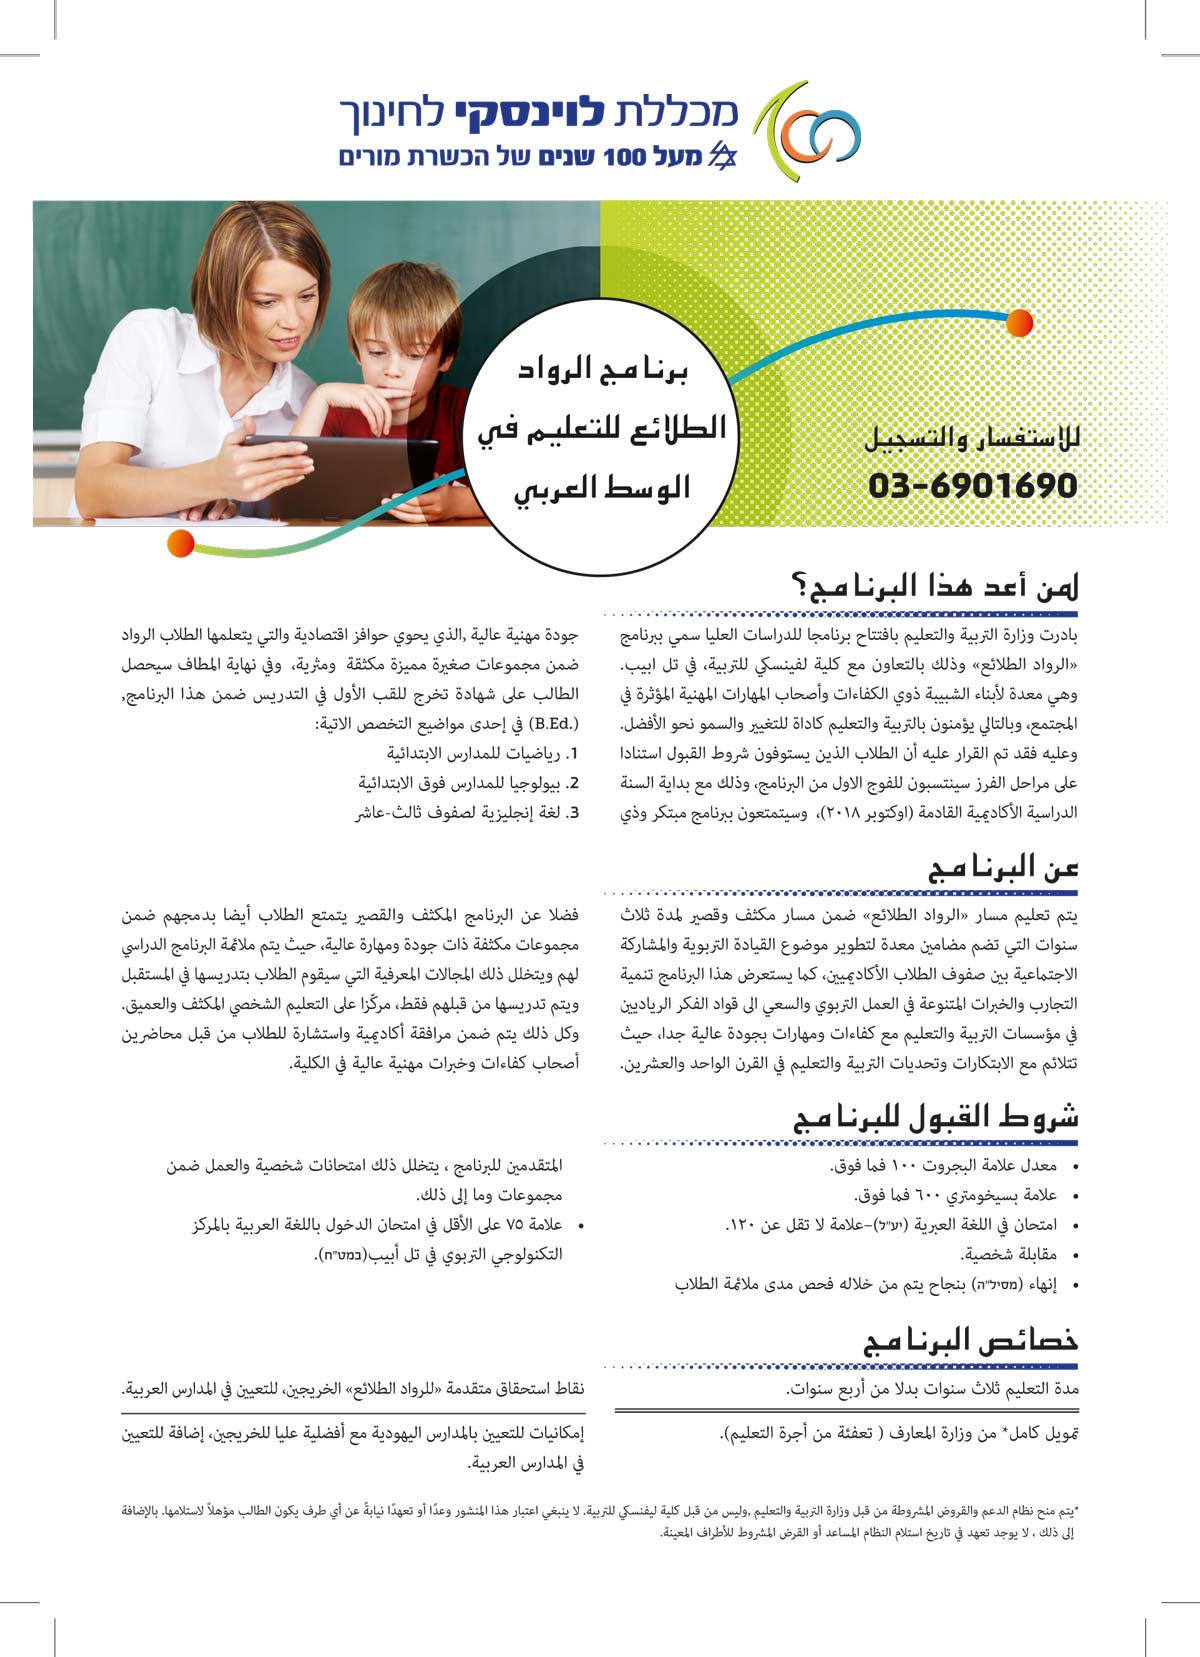 flyer_Hebrew-Arabic_arabic